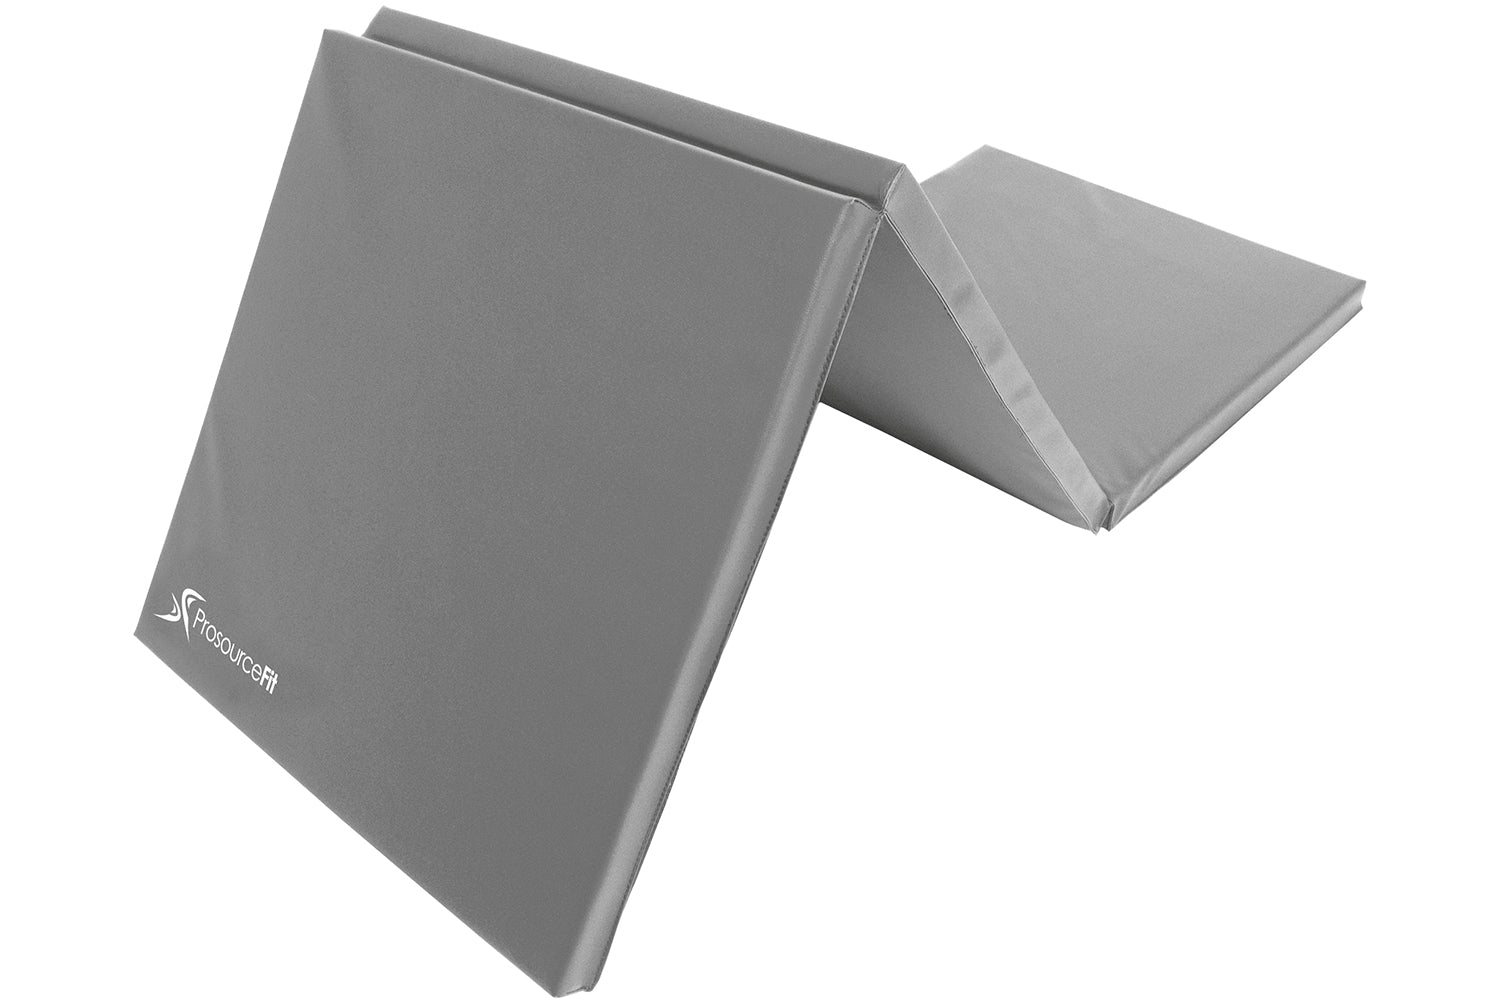 Grey Tri-Fold Folding Exercise Mat 6x2x1.5